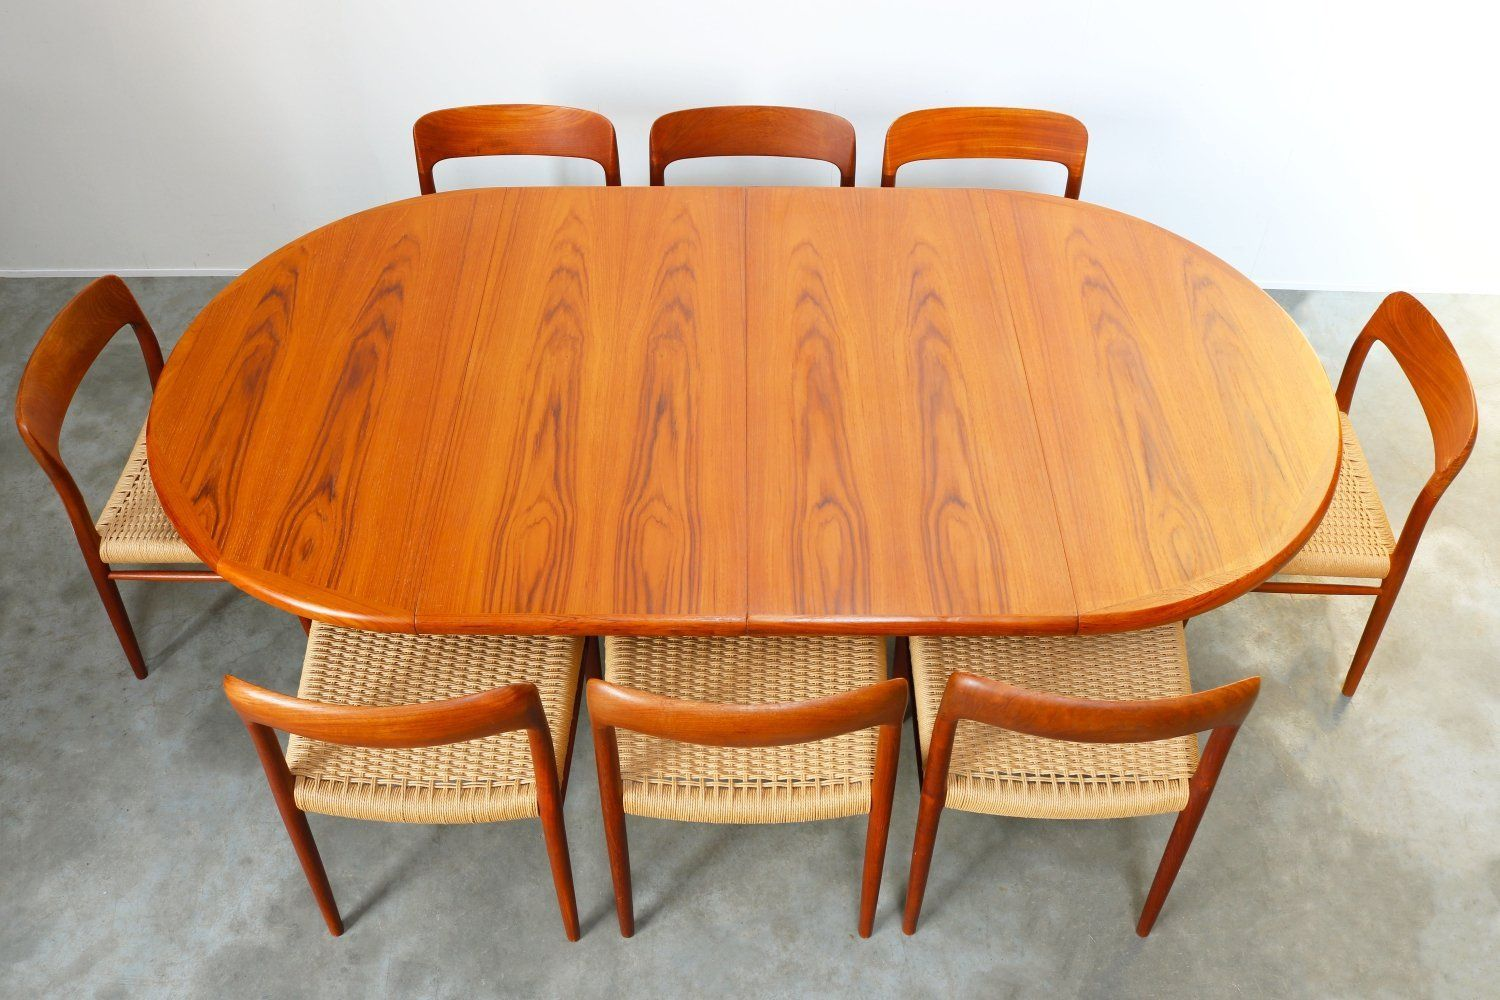 For Sale Large Danish Dining Room Set In Teak Papercord By